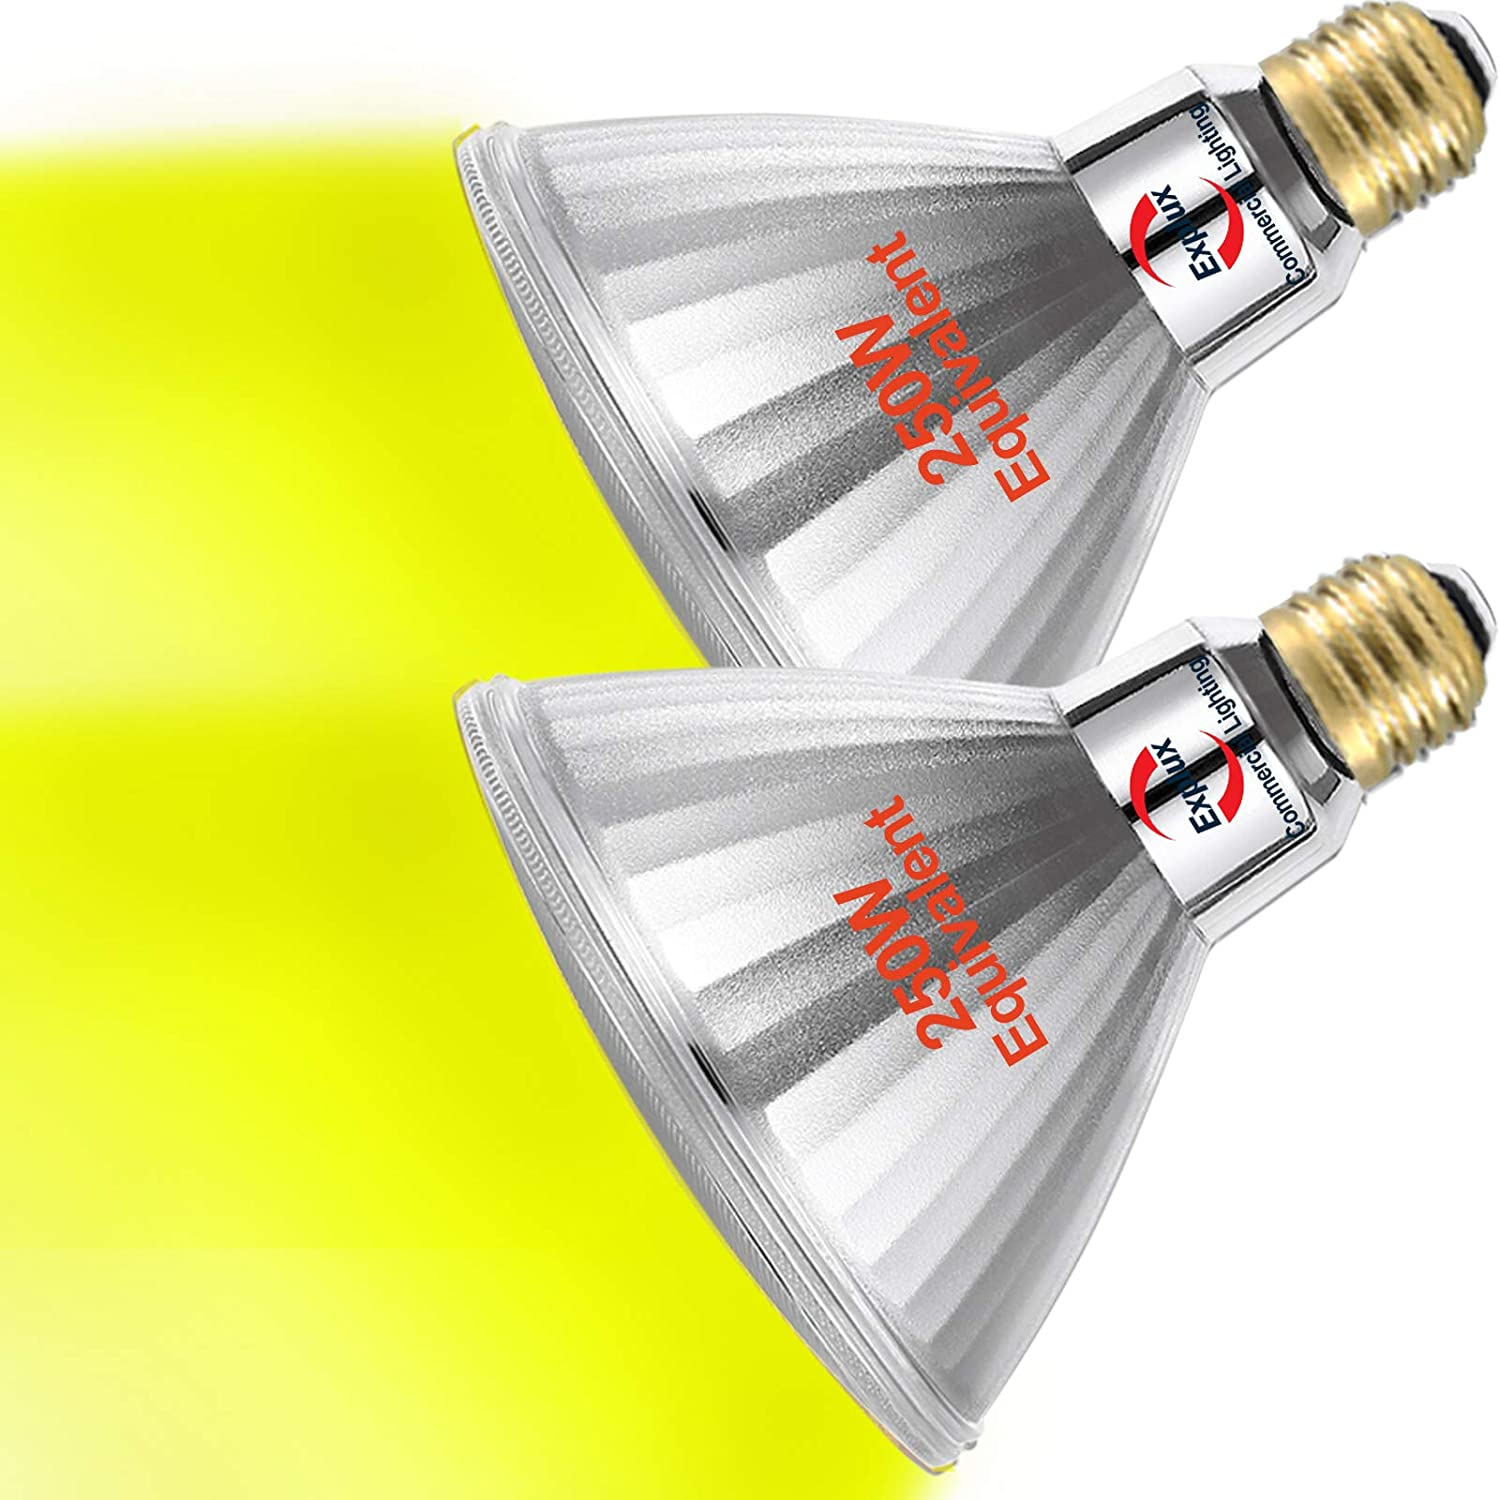 Explux 250W Equivalent Yellow LED PAR38 Flood Light Bulbs, Bug Light, Outdoor Full-Glass Weatherproof, Dimmable, 2-Pack